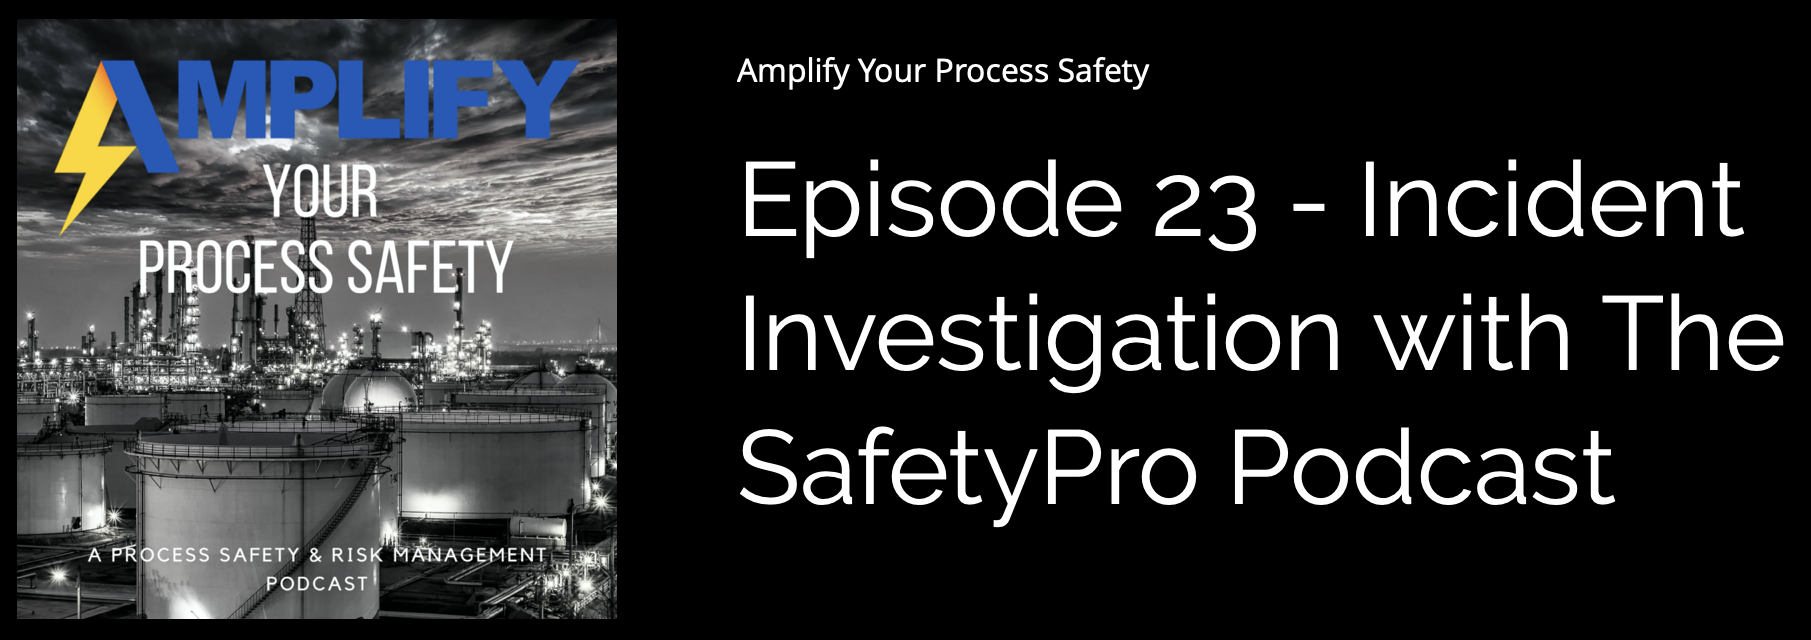 Amplify Your Process Safety Podcast